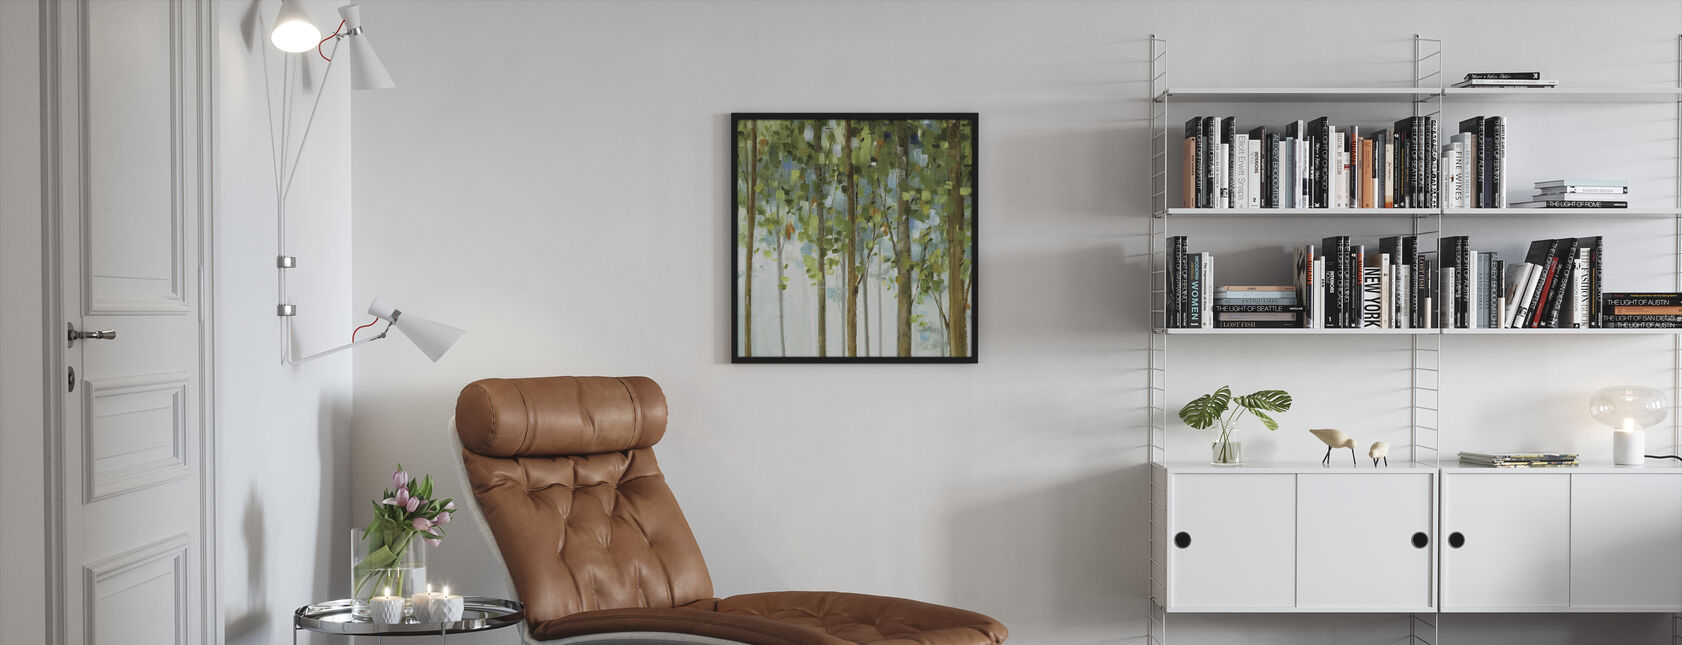 Forest Study 2 - Framed print - Living Room